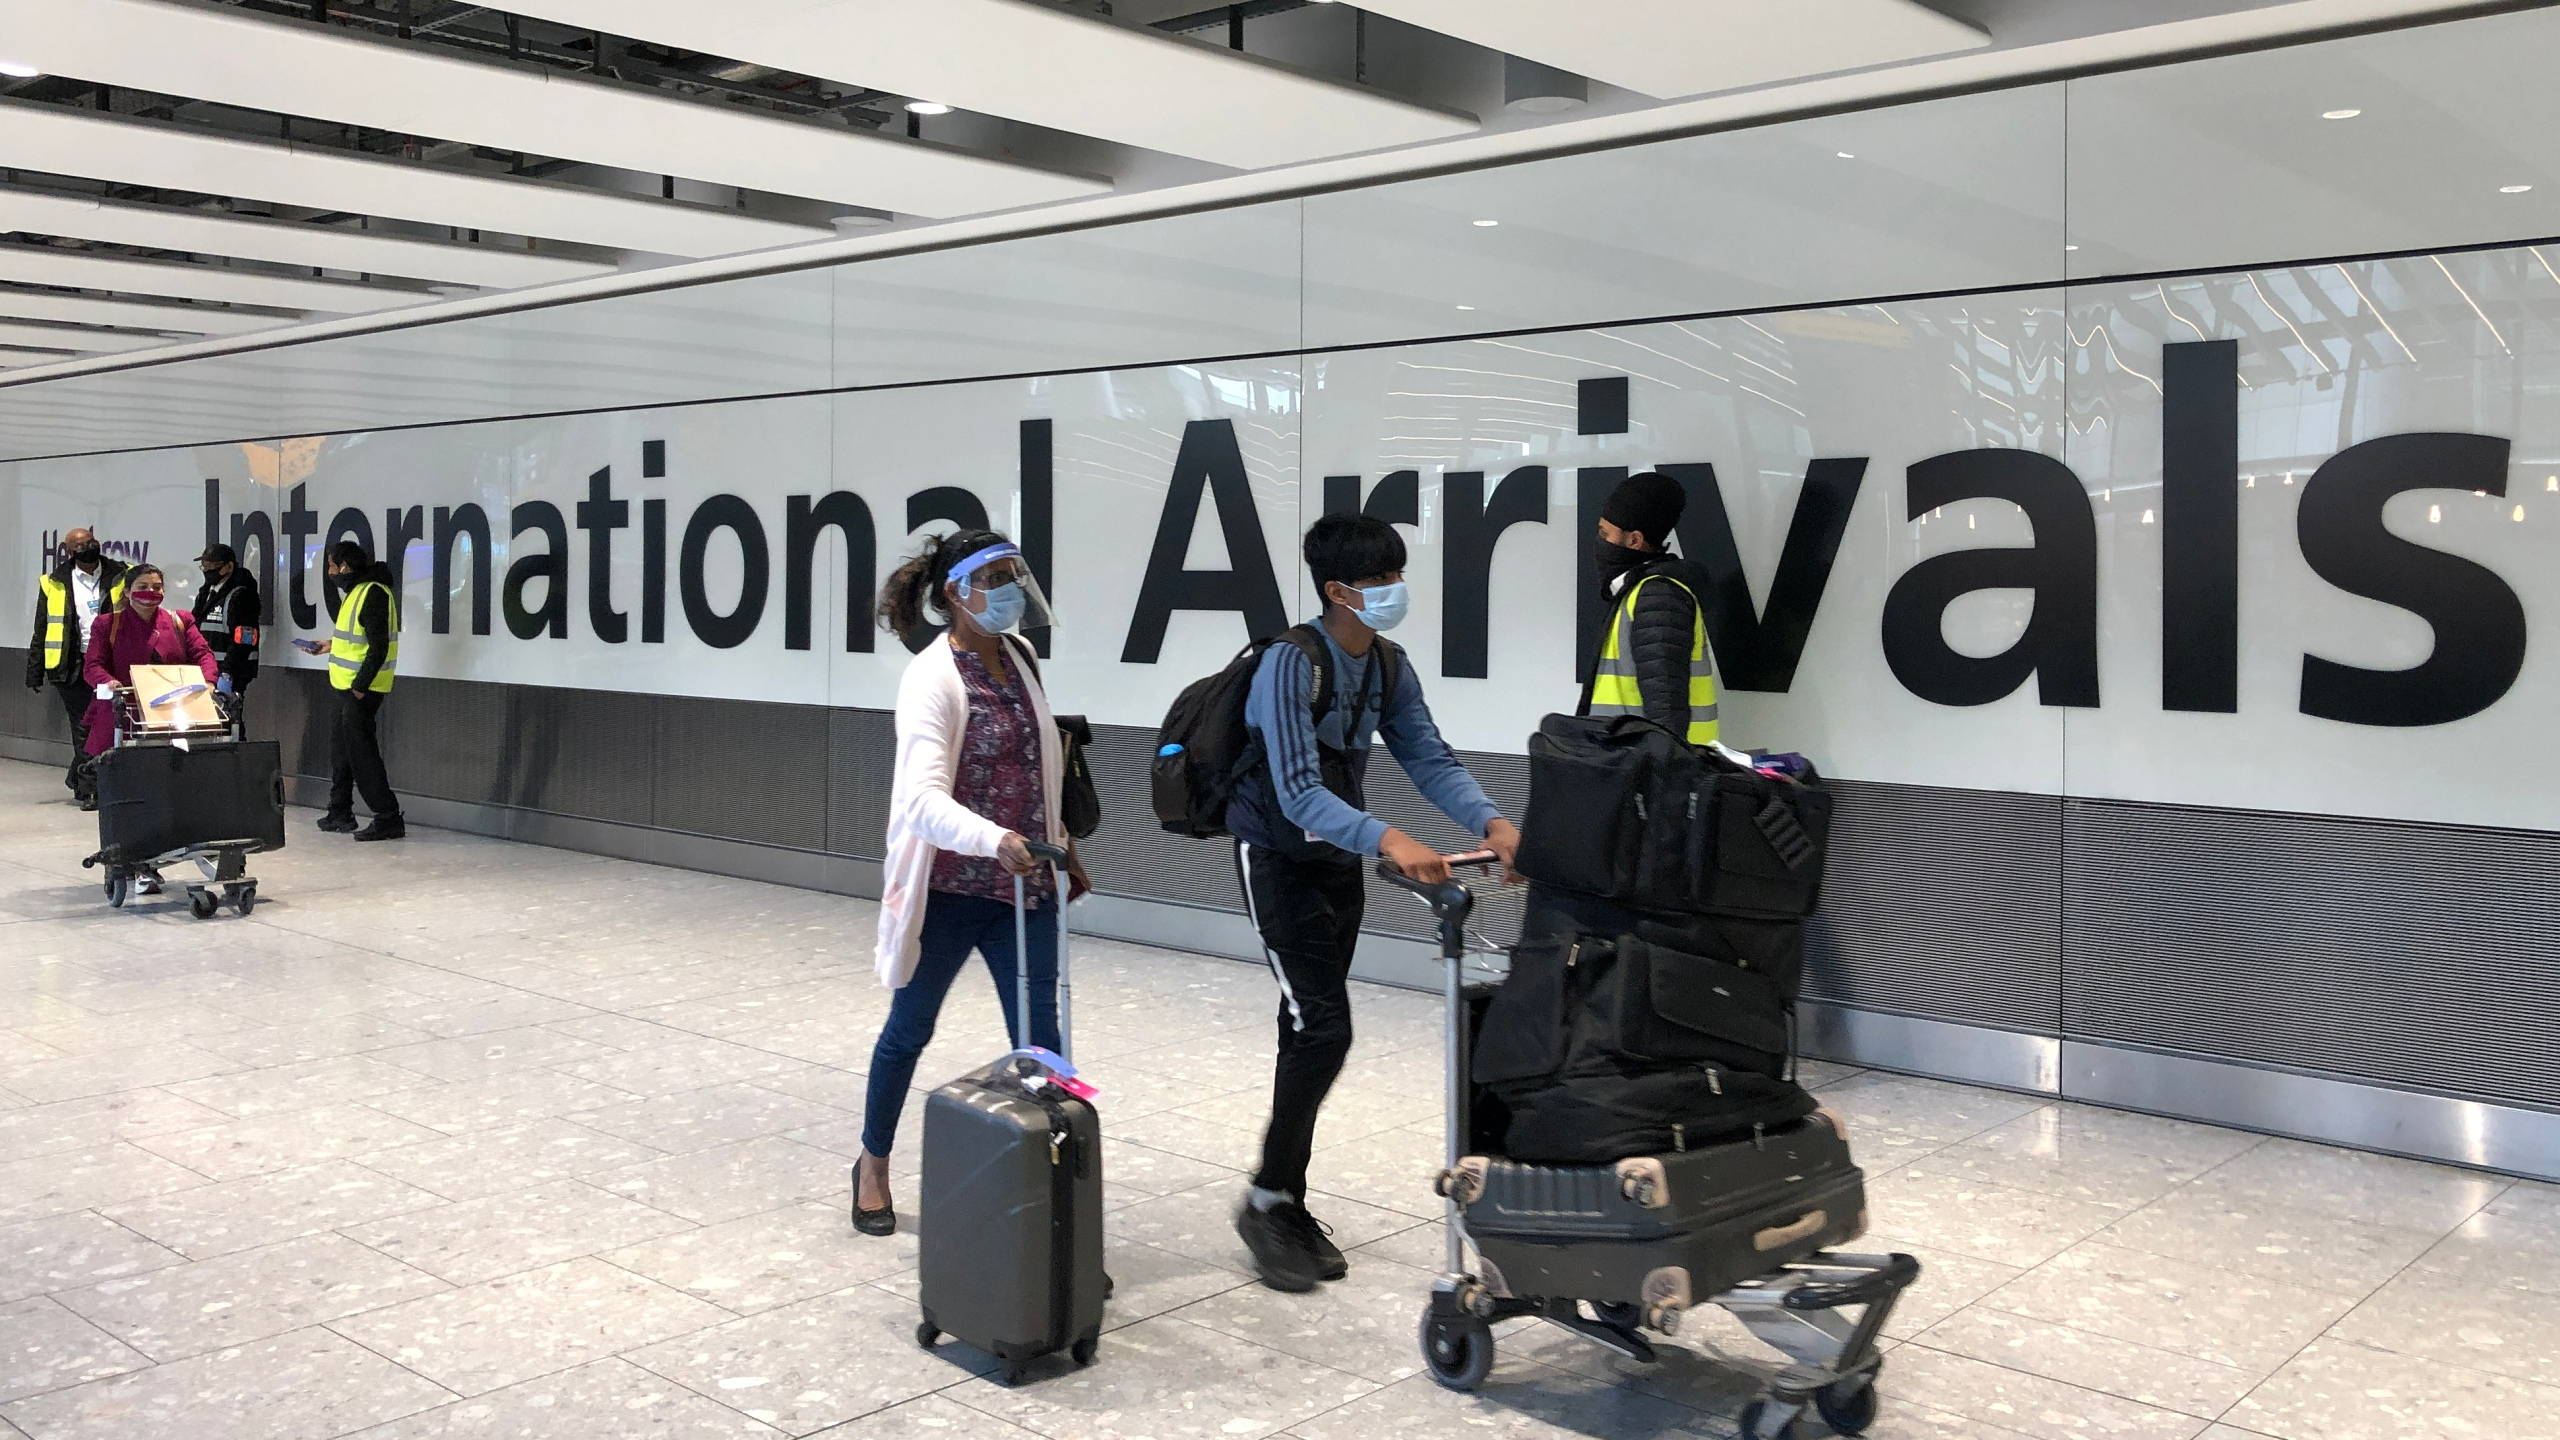 Passengers are escorted through the arrivals area of terminal 5 towards coaches destined for quarantine hotels, after landing at Heathrow airport on April 23, 2021 in London, England. (Leon Neal/Getty Images)